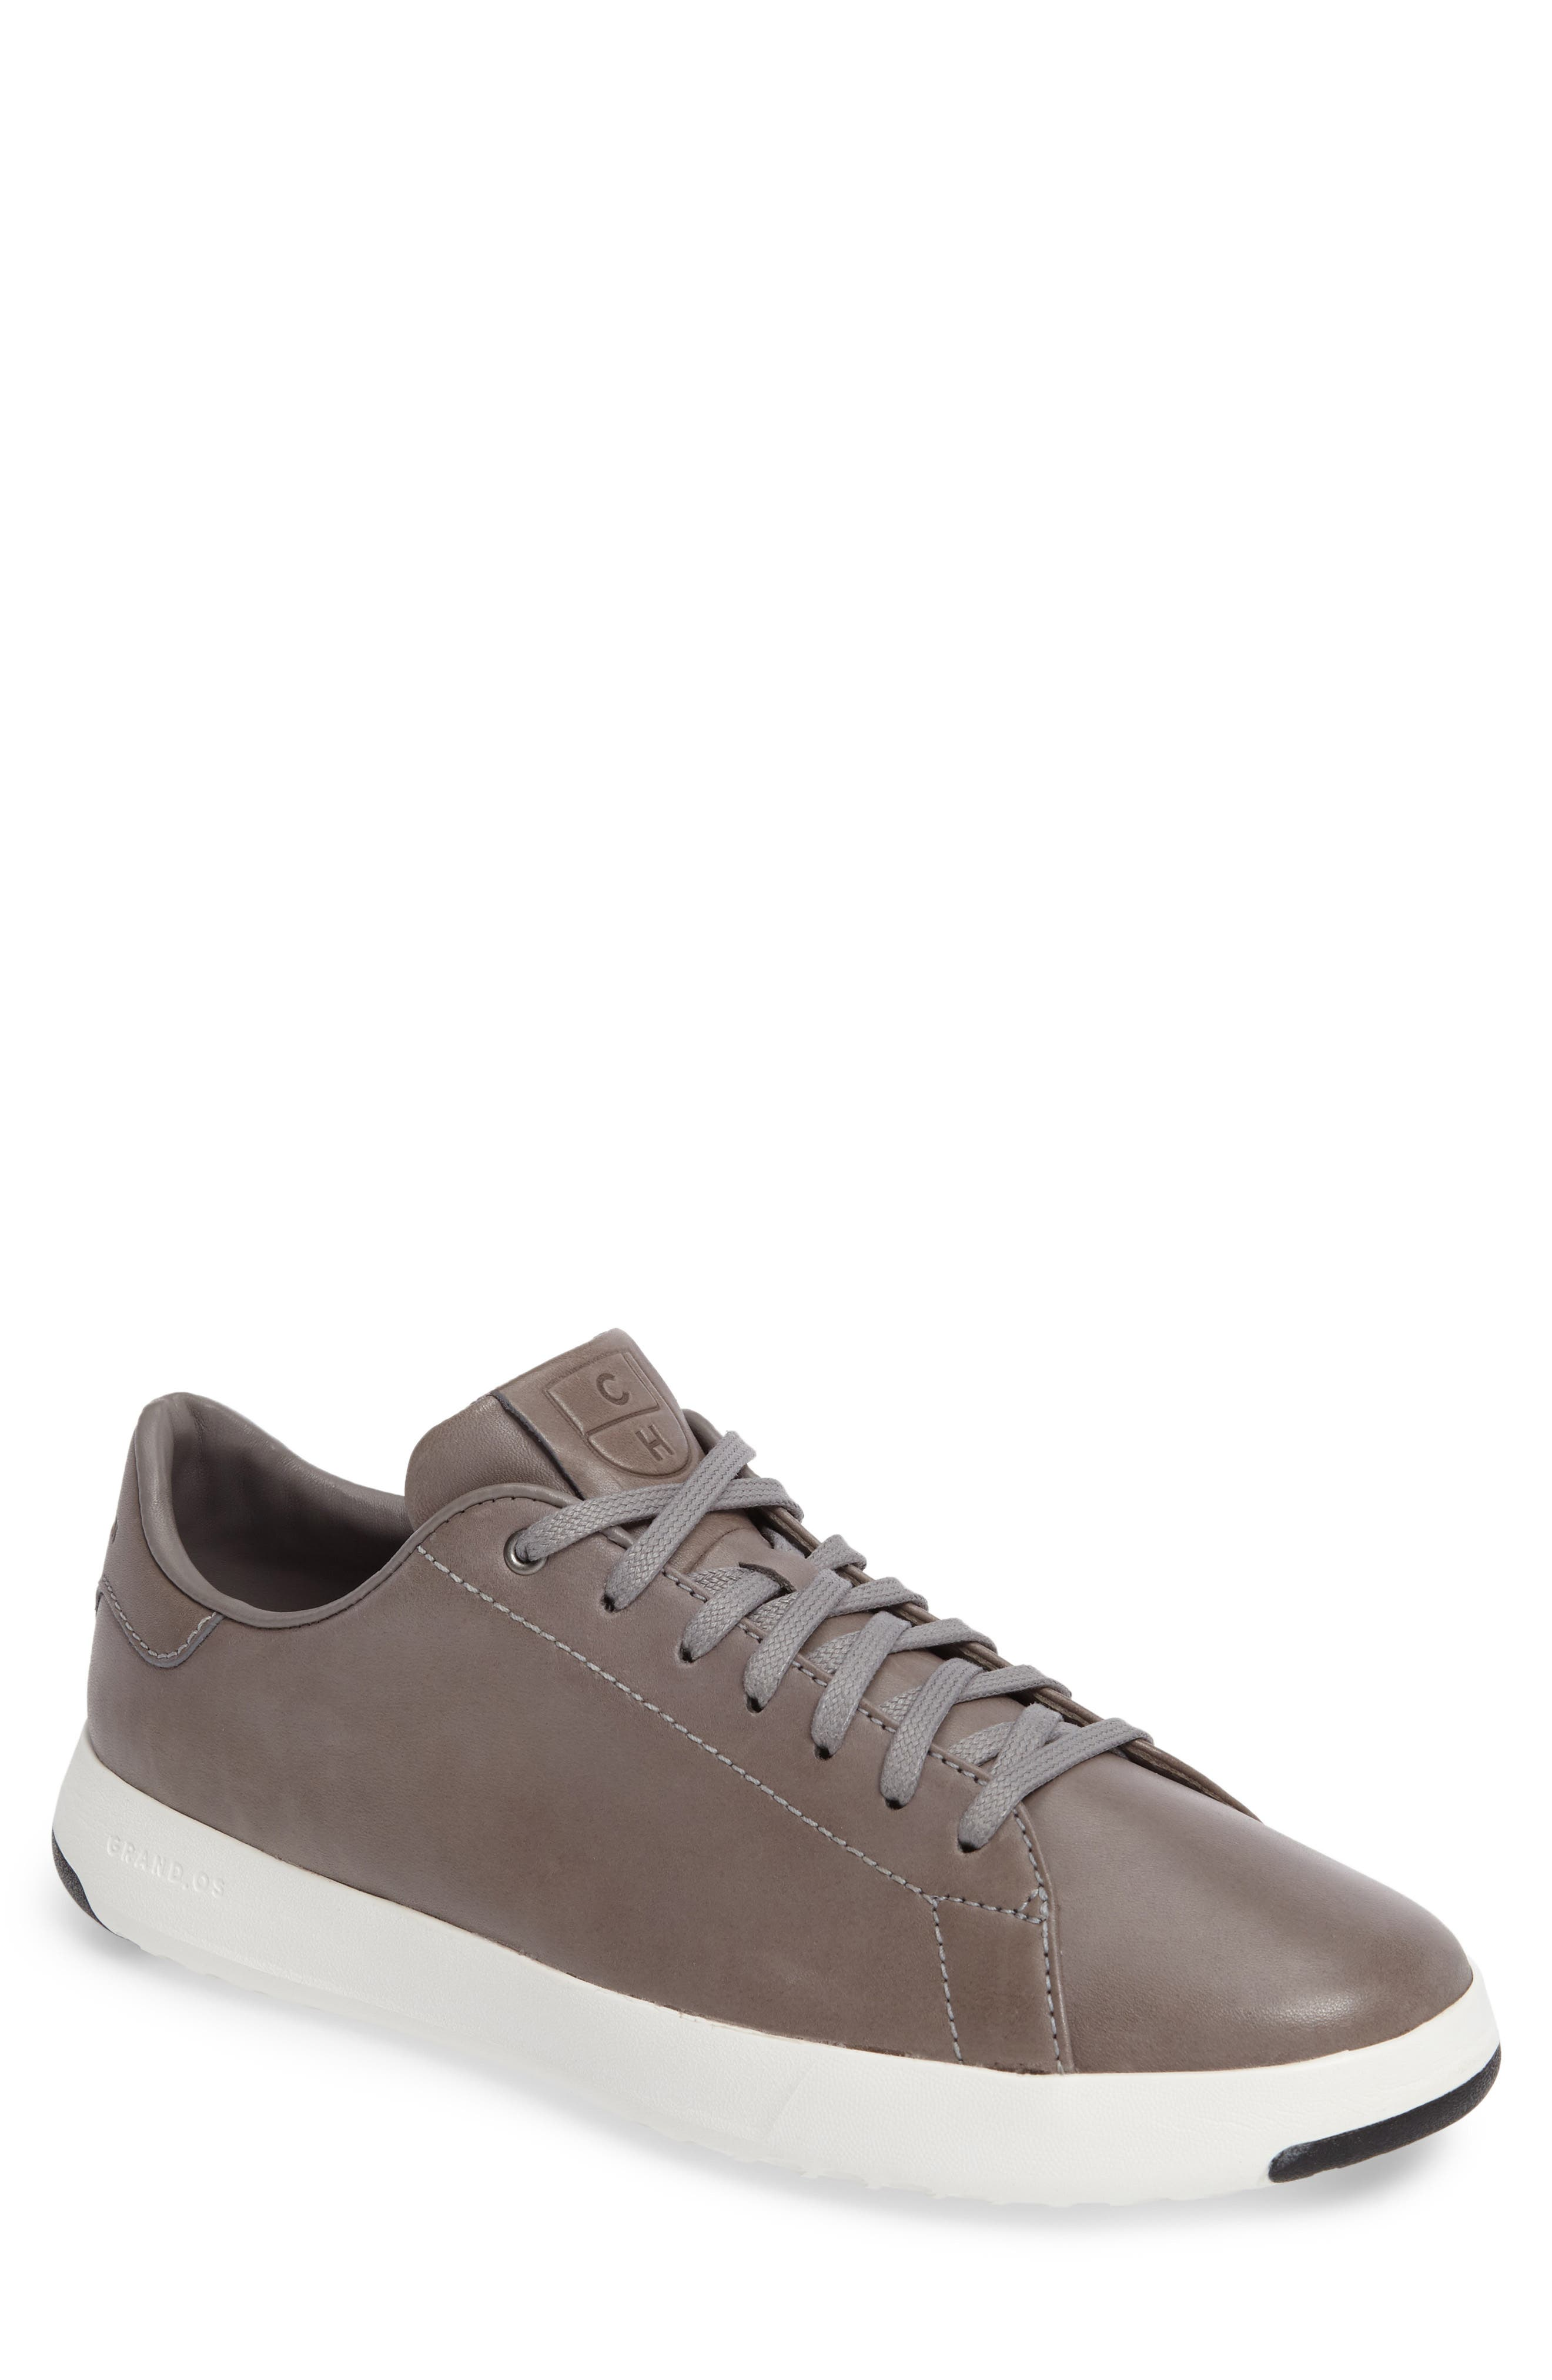 GrandPro Tennis Sneaker,                             Main thumbnail 1, color,                             IRONCLOUD LEATHER